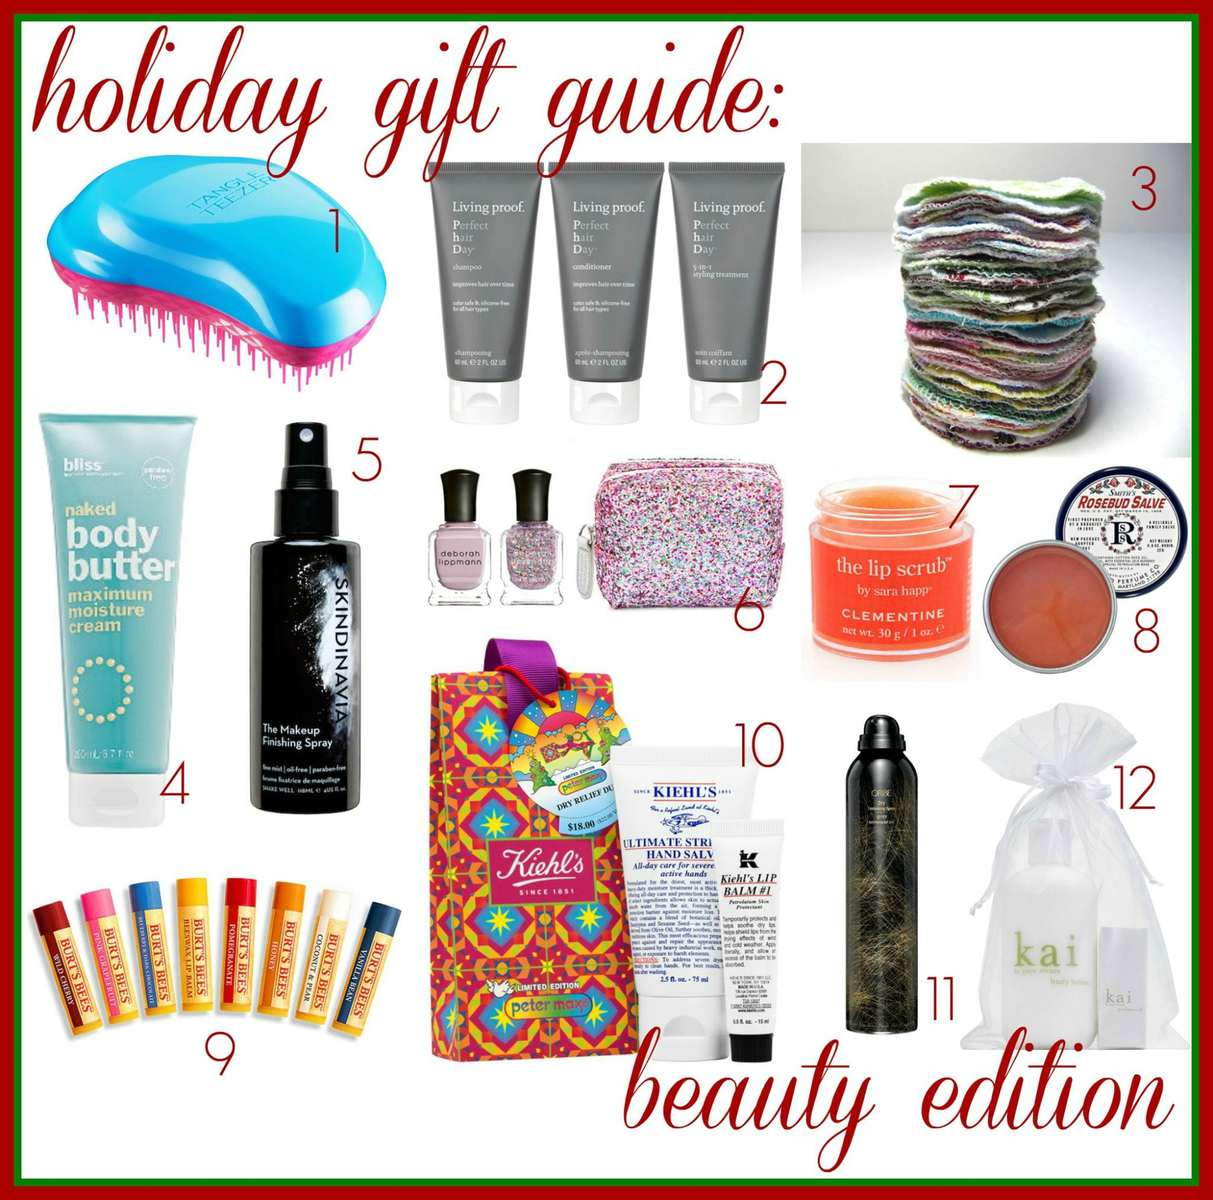 Holiday Gift Guide: Beauty Edition with products in all sorts of prices and for all types of people on your gift list